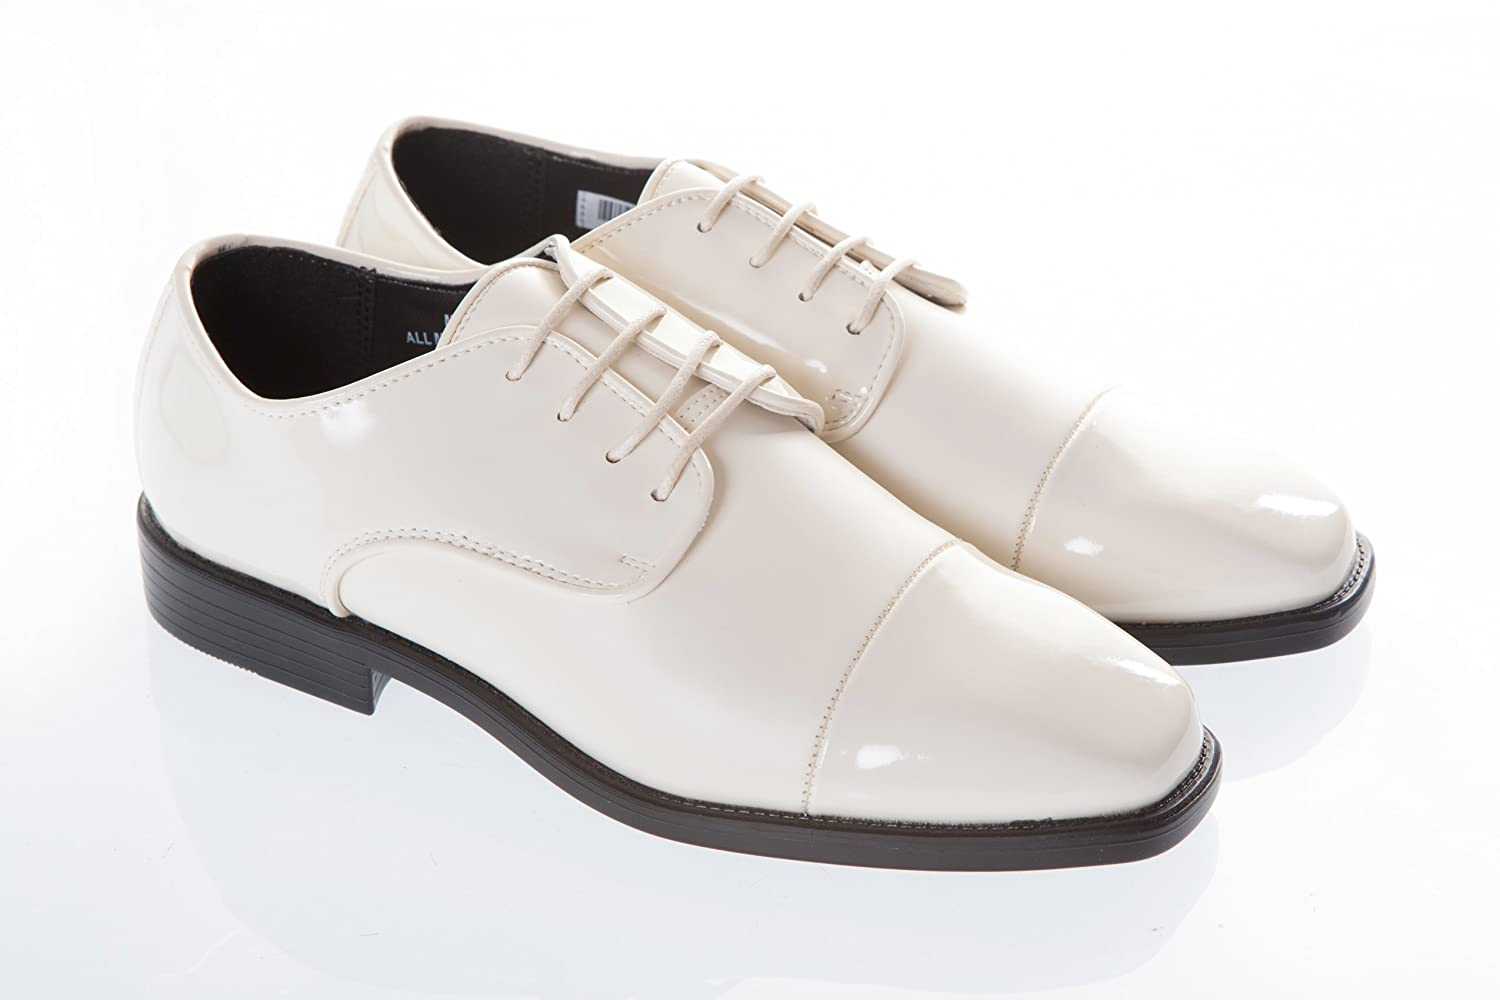 Ivory colored dress shoes for men